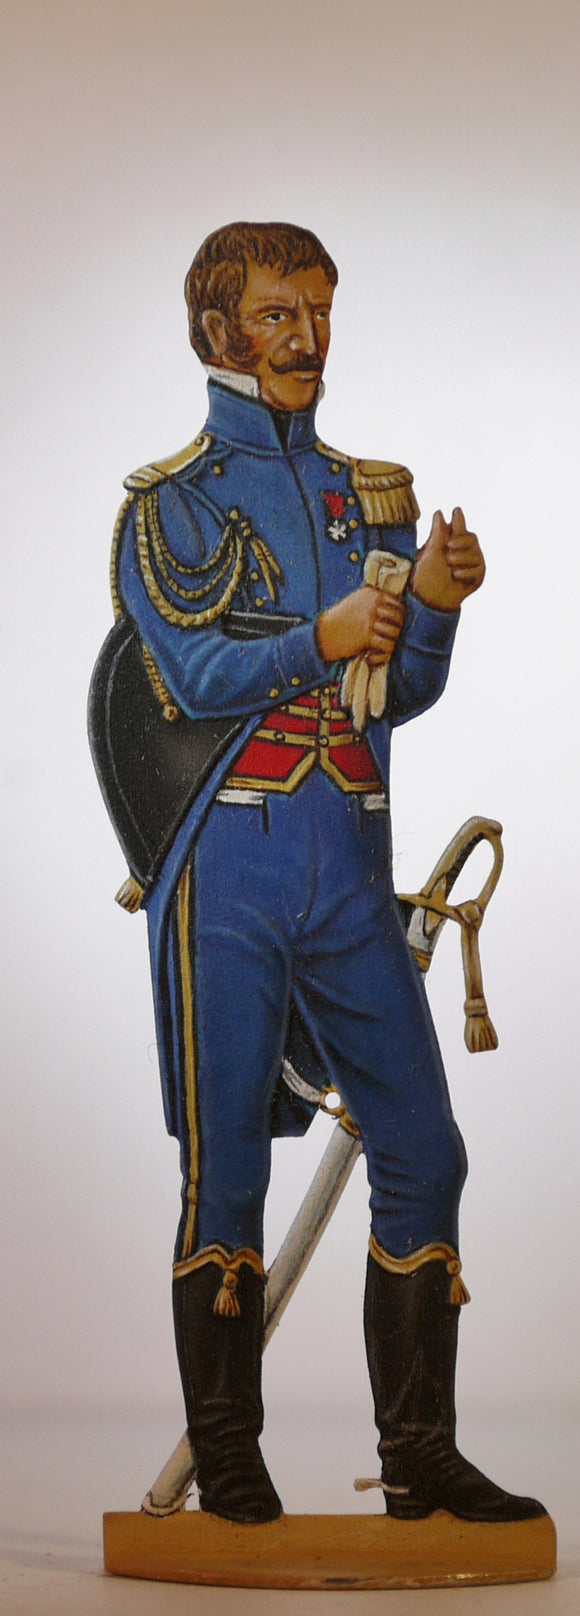 Marshals A.d.C.in reglementary nr.2 uniform (petite tenue) - Glorious Empires-Historical Miniatures